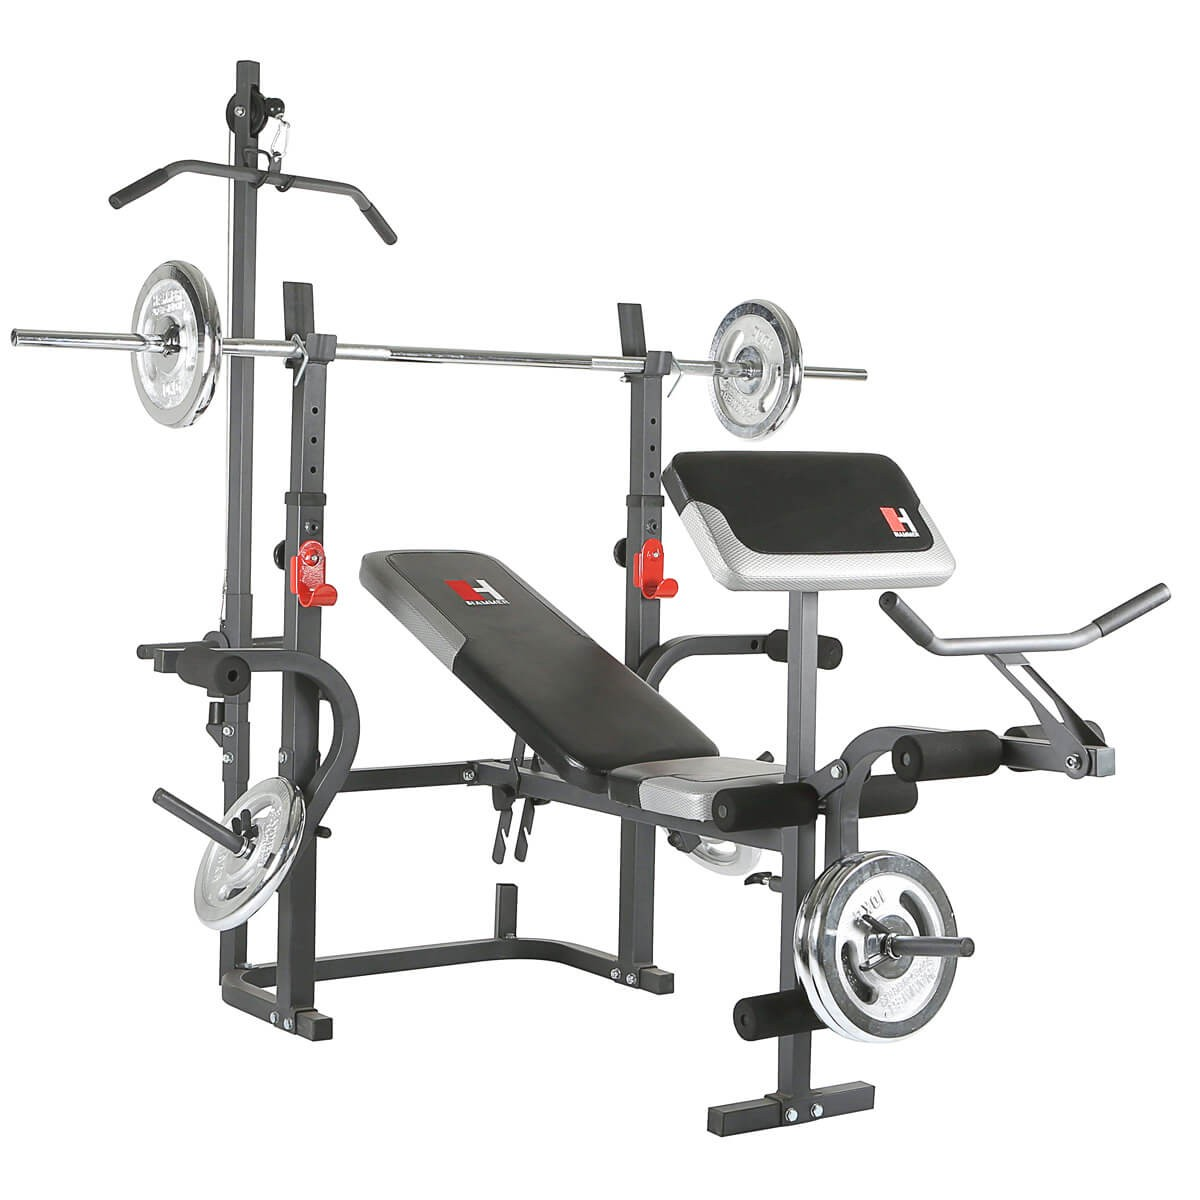 with w bench marcy to strength pm variety workout olympic pro squat walk your rack adds quality in products the